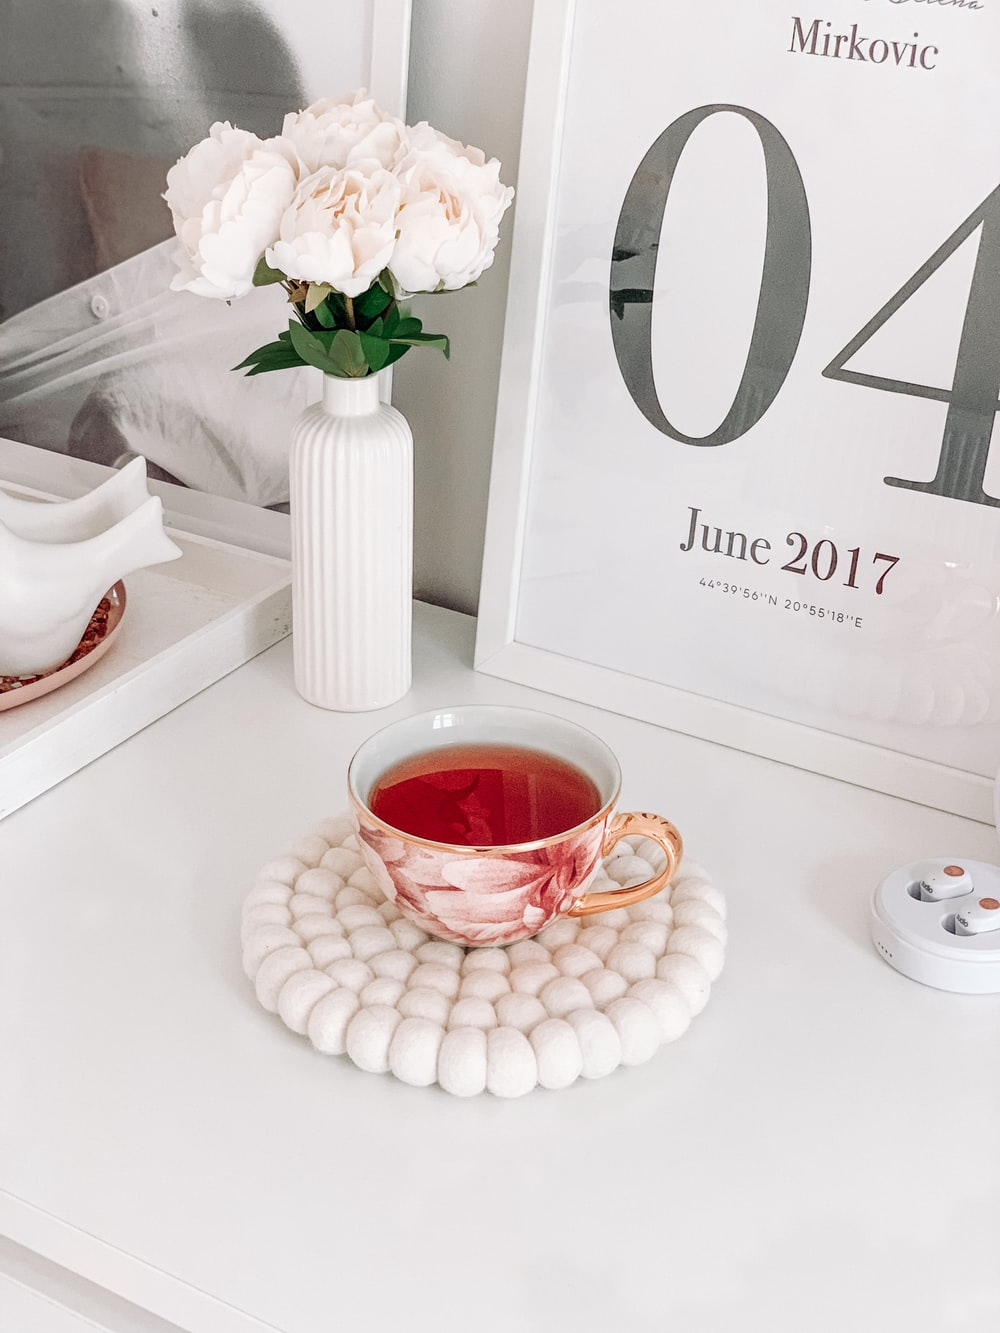 red and white ceramic teacup filled with red liquid